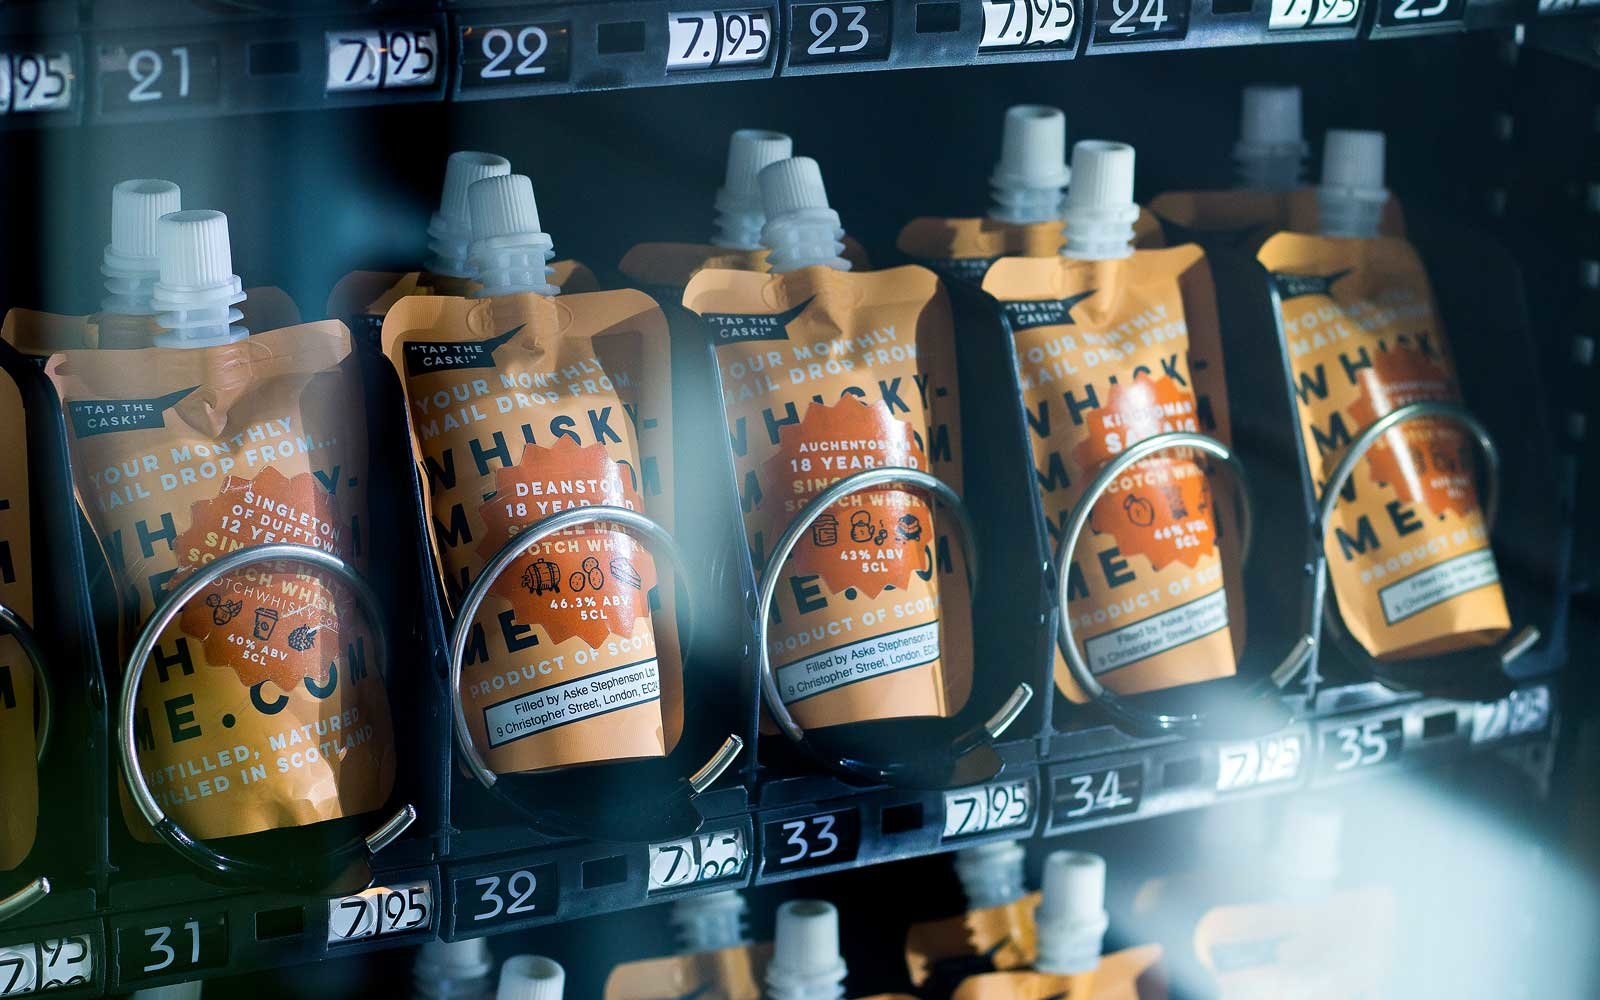 Guests can grab whisky on the go with a new vending machine.